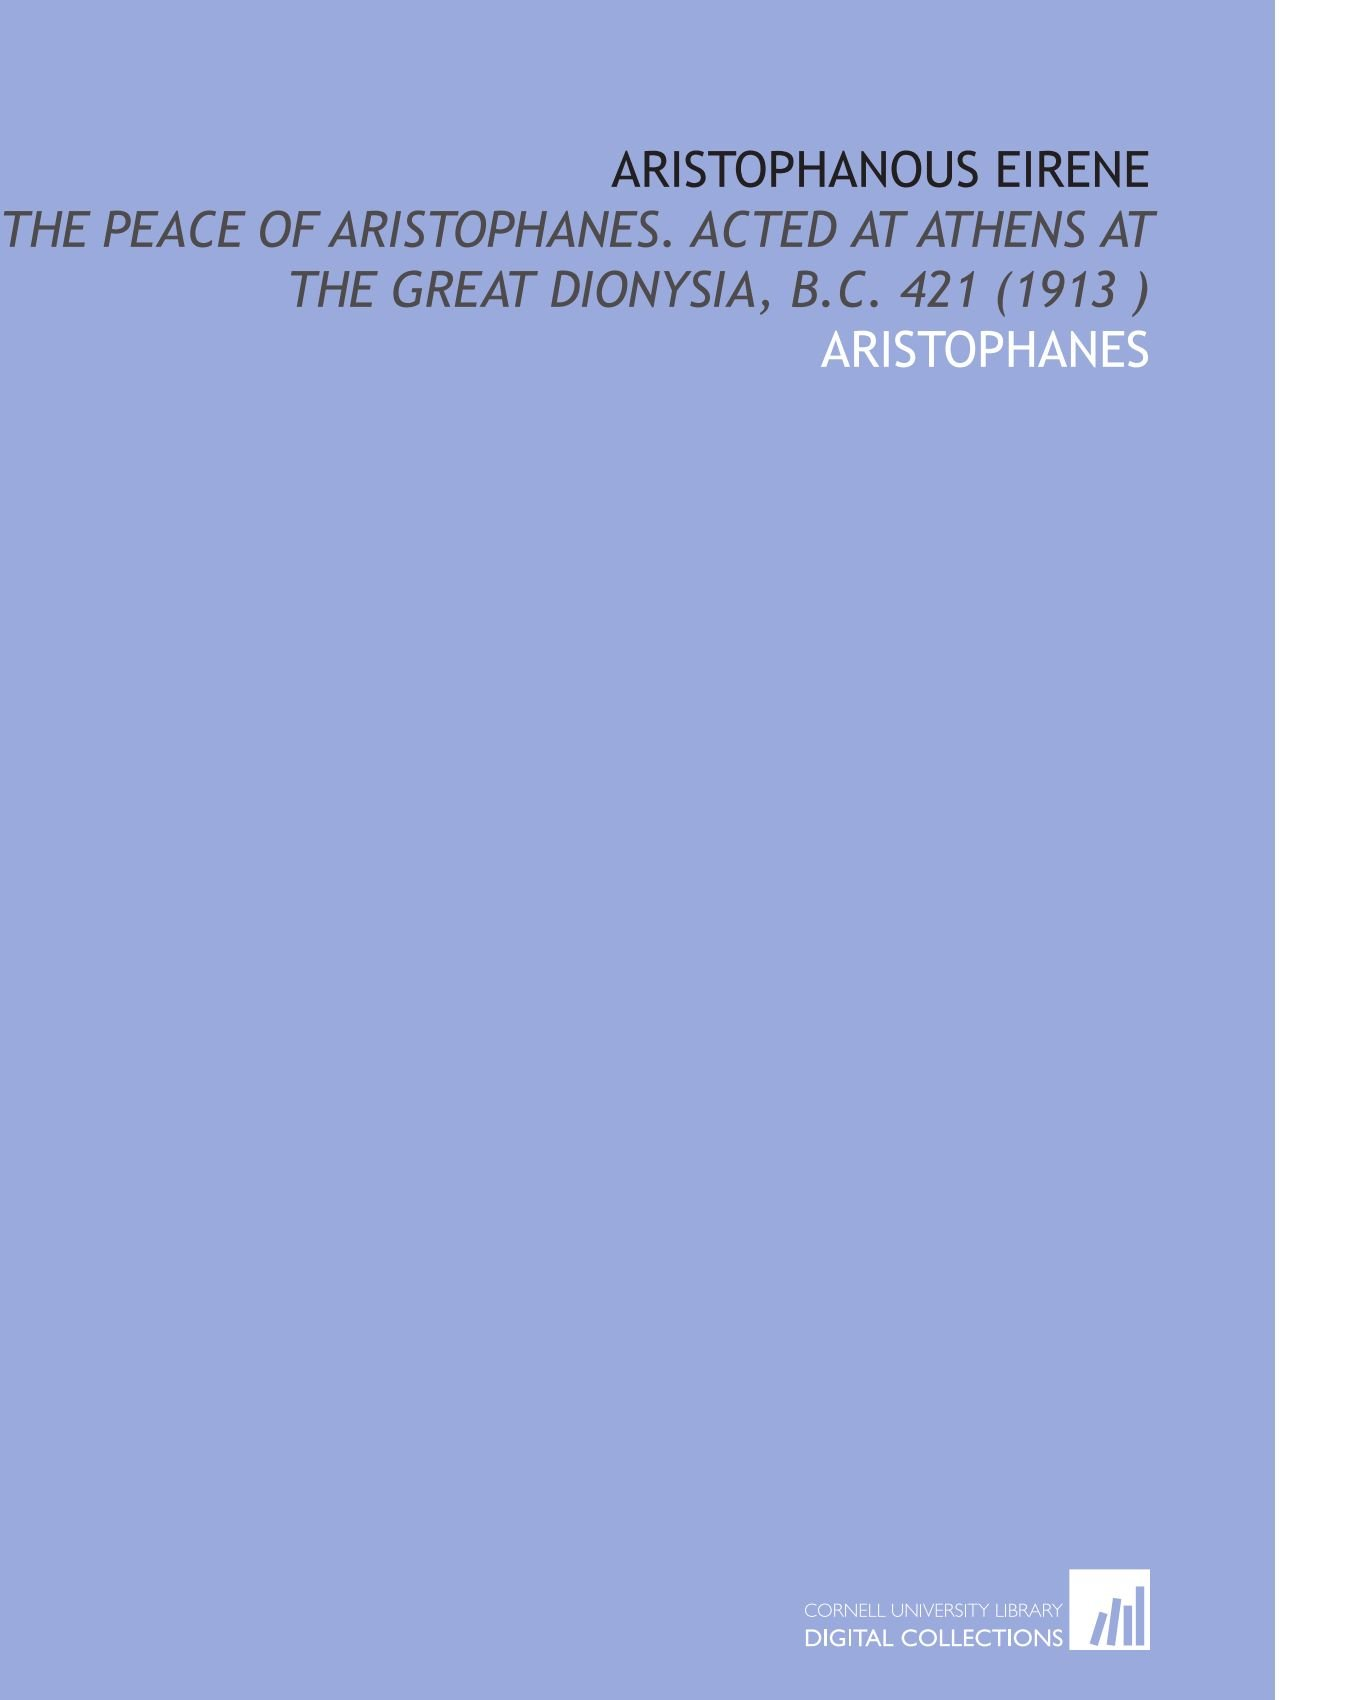 Aristophanous Eirene: The Peace of Aristophanes. Acted at Athens at the Great Dionysia, B.C. 421 (1913 ) ebook